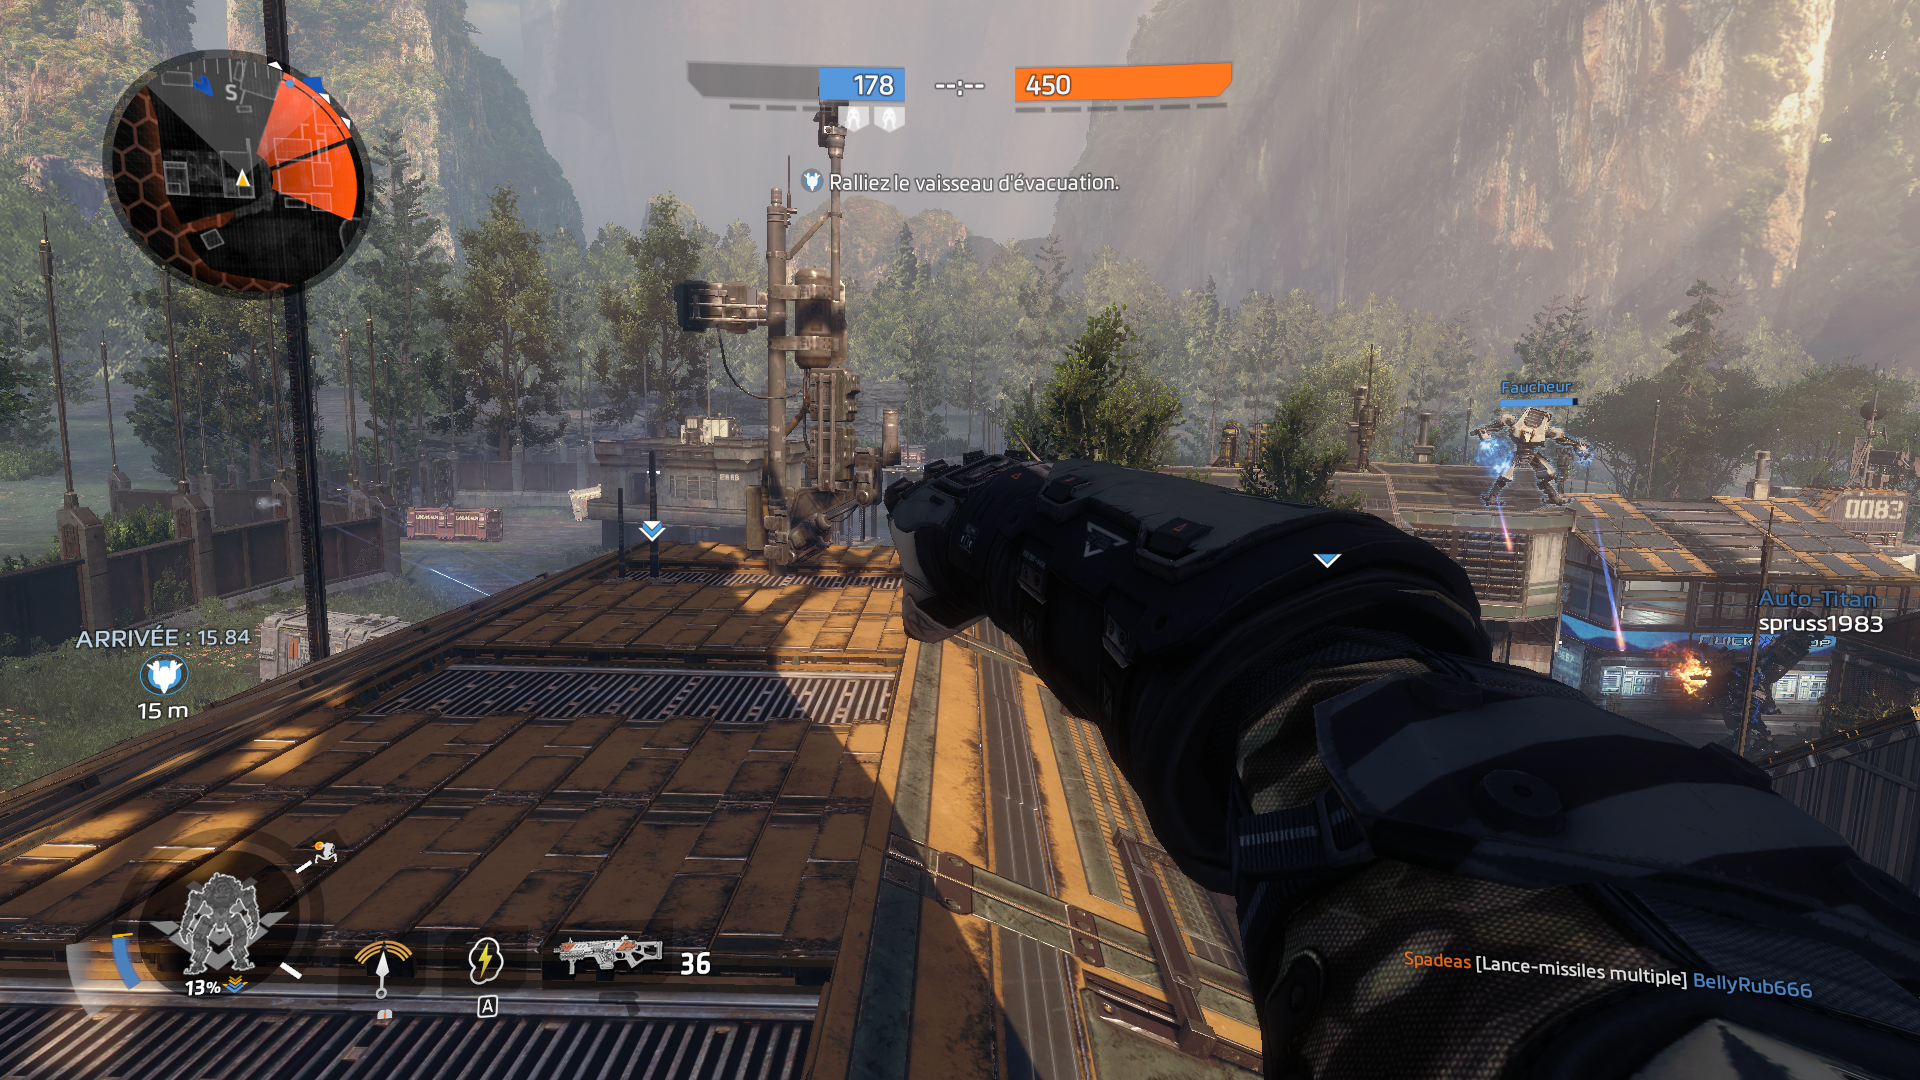 fist titanfall 2 poing coup corps a corps melee